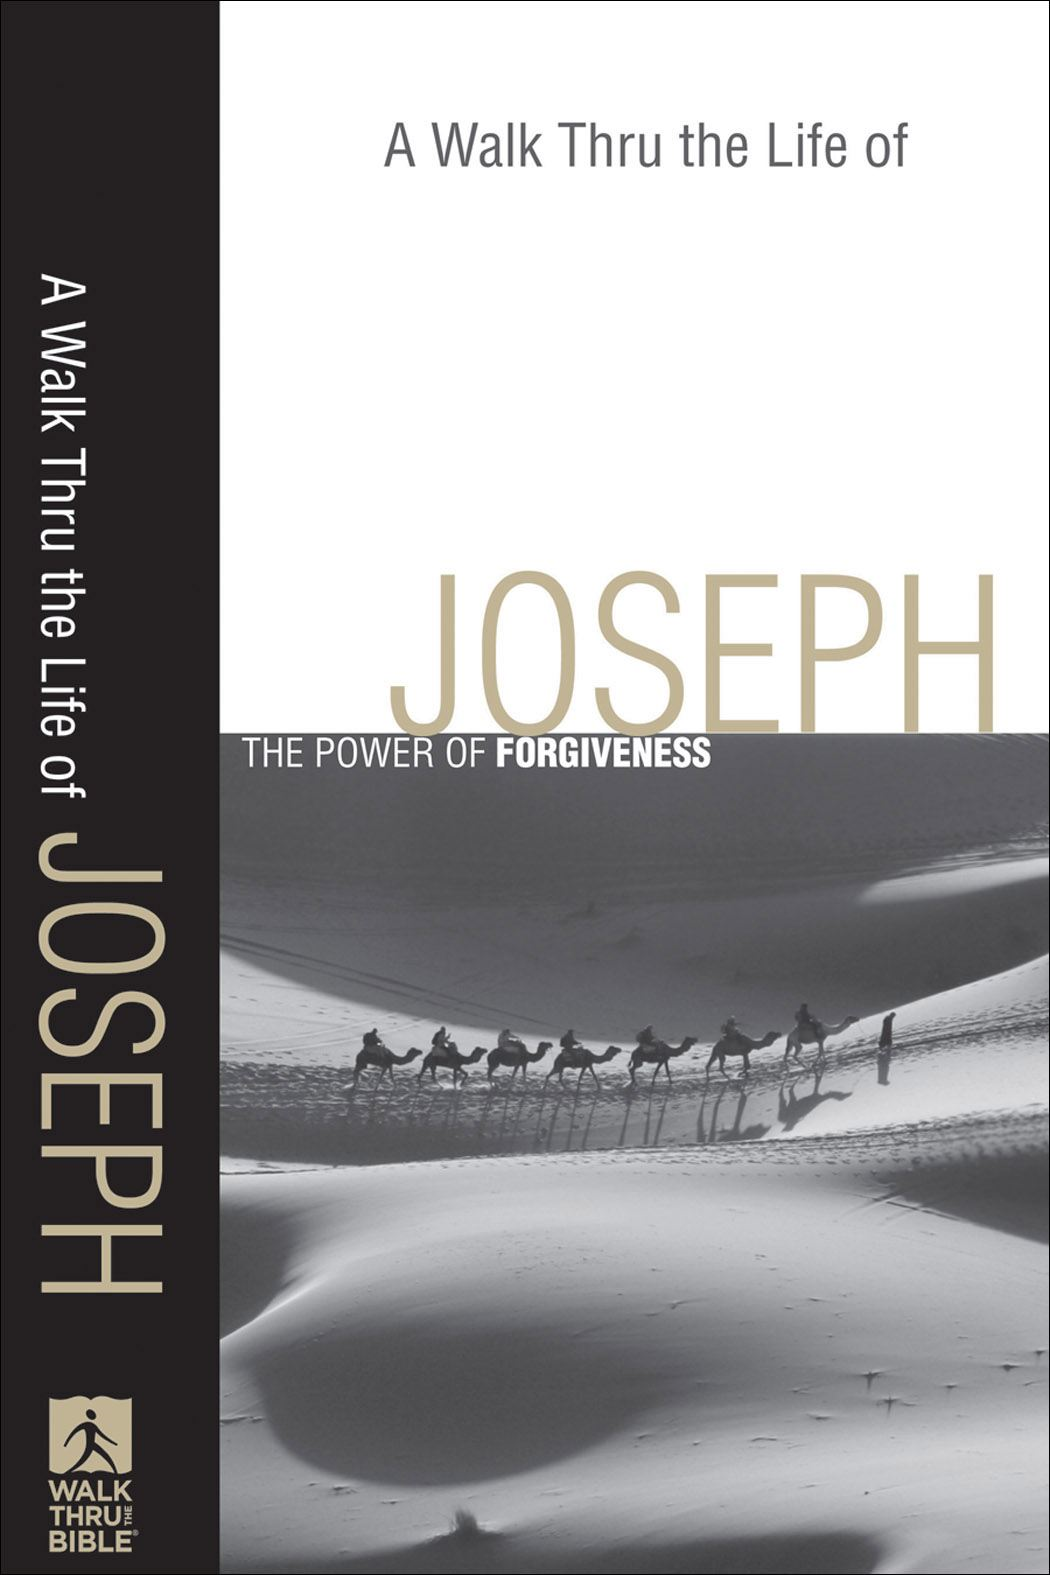 Walk Thru the Life of Joseph, A (Walk Thru the Bible Discussion Guides) By: Baker Publishing Group